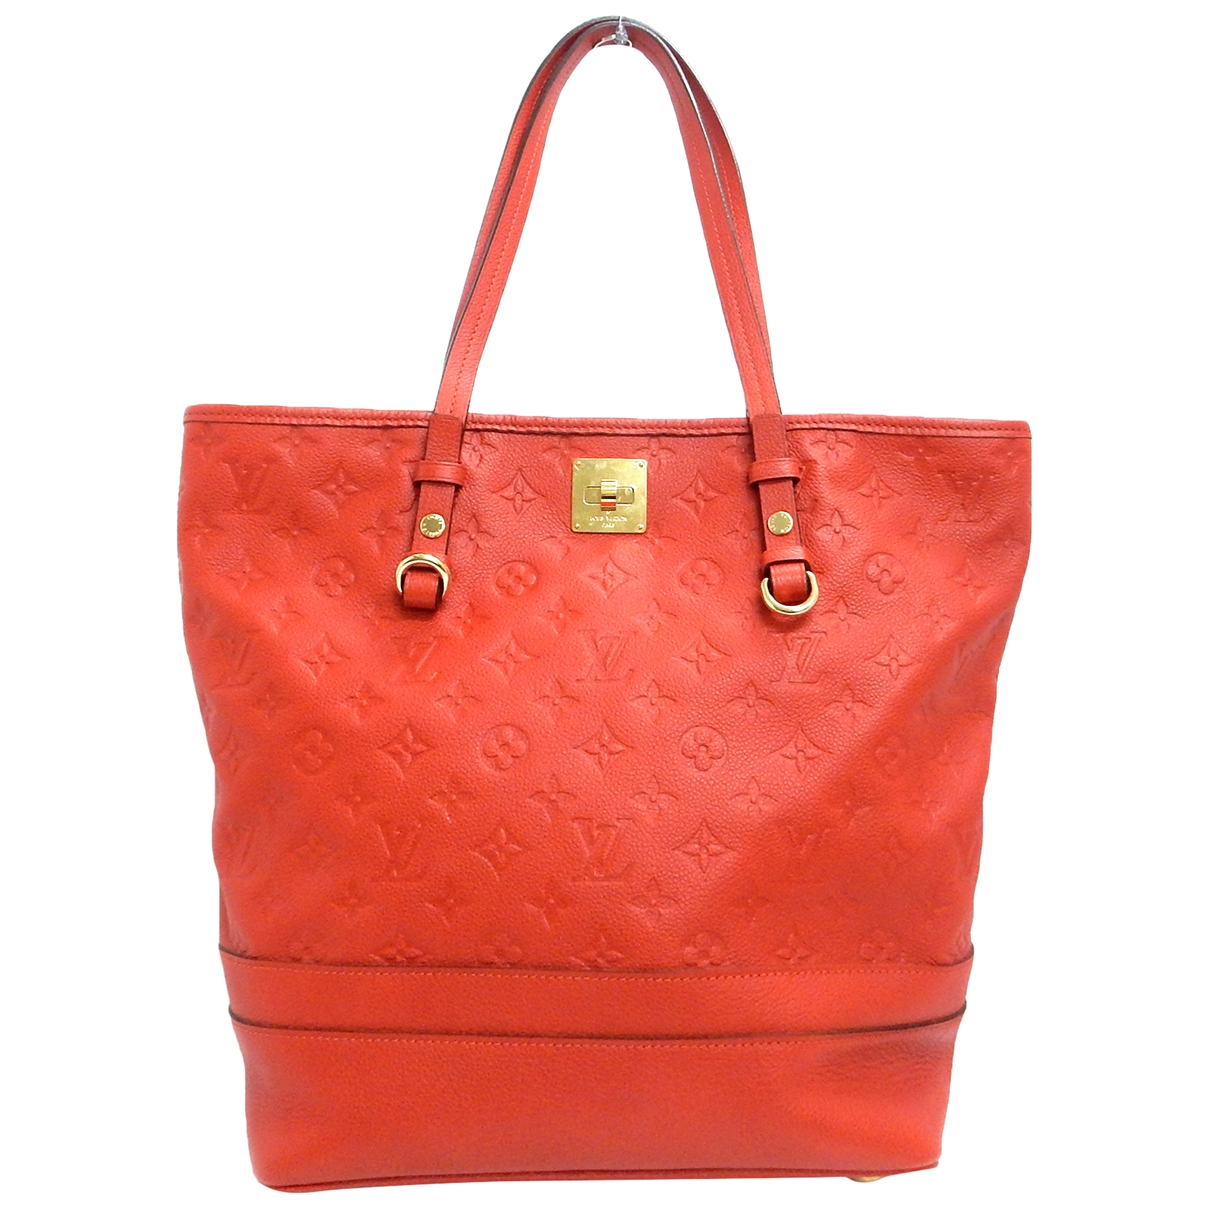 Louis Vuitton Citadine Red Leather handbag for Women \N